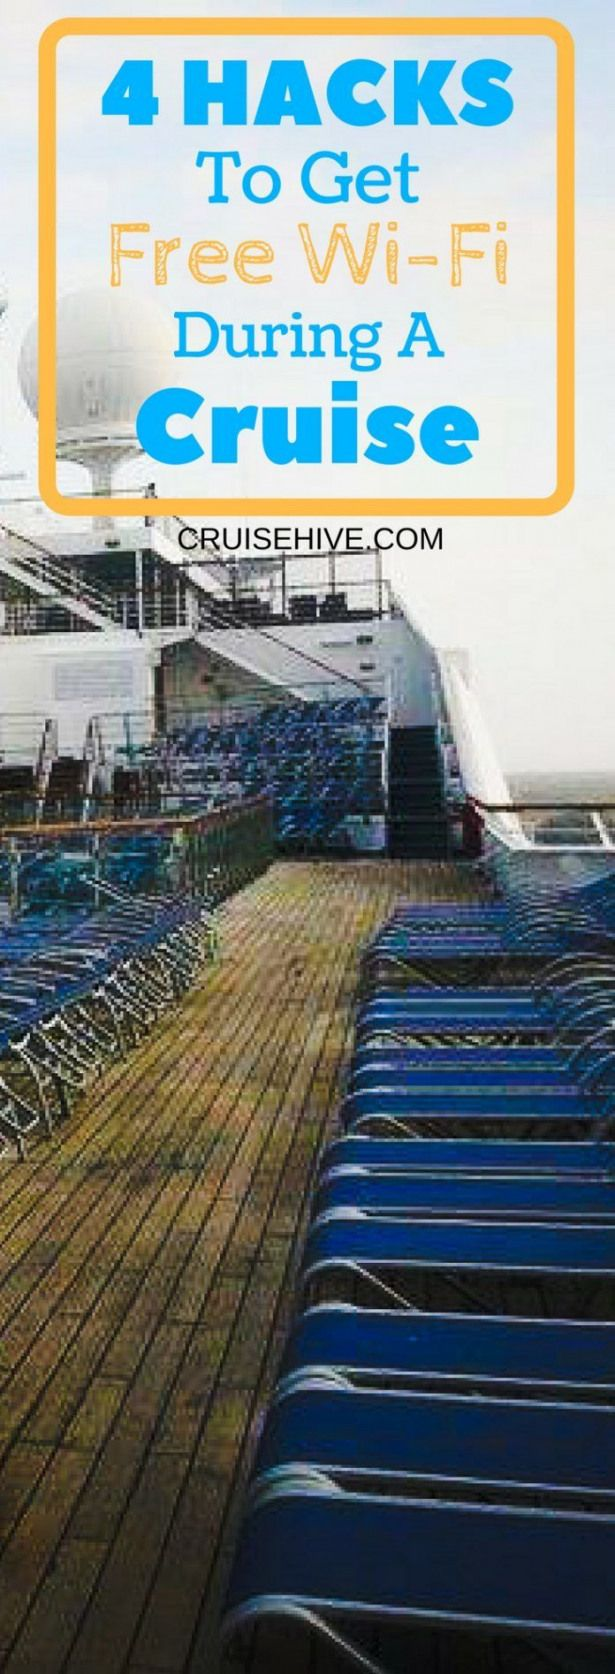 4 Hacks To Get Free Wi-Fi During Your Cruise Vacat…